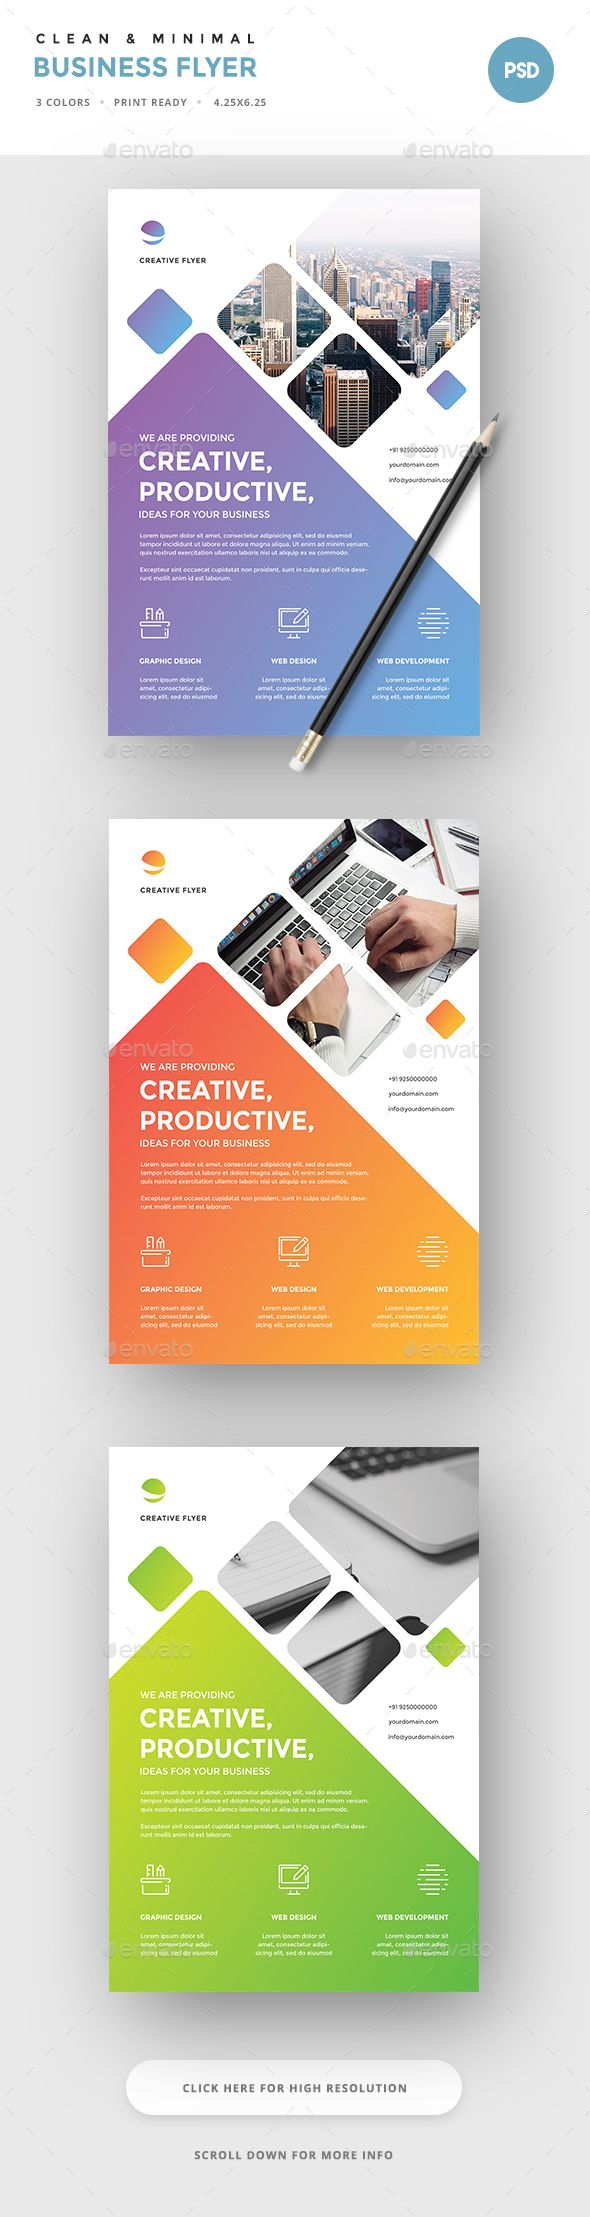 Images About Freelance Flyer On   Design